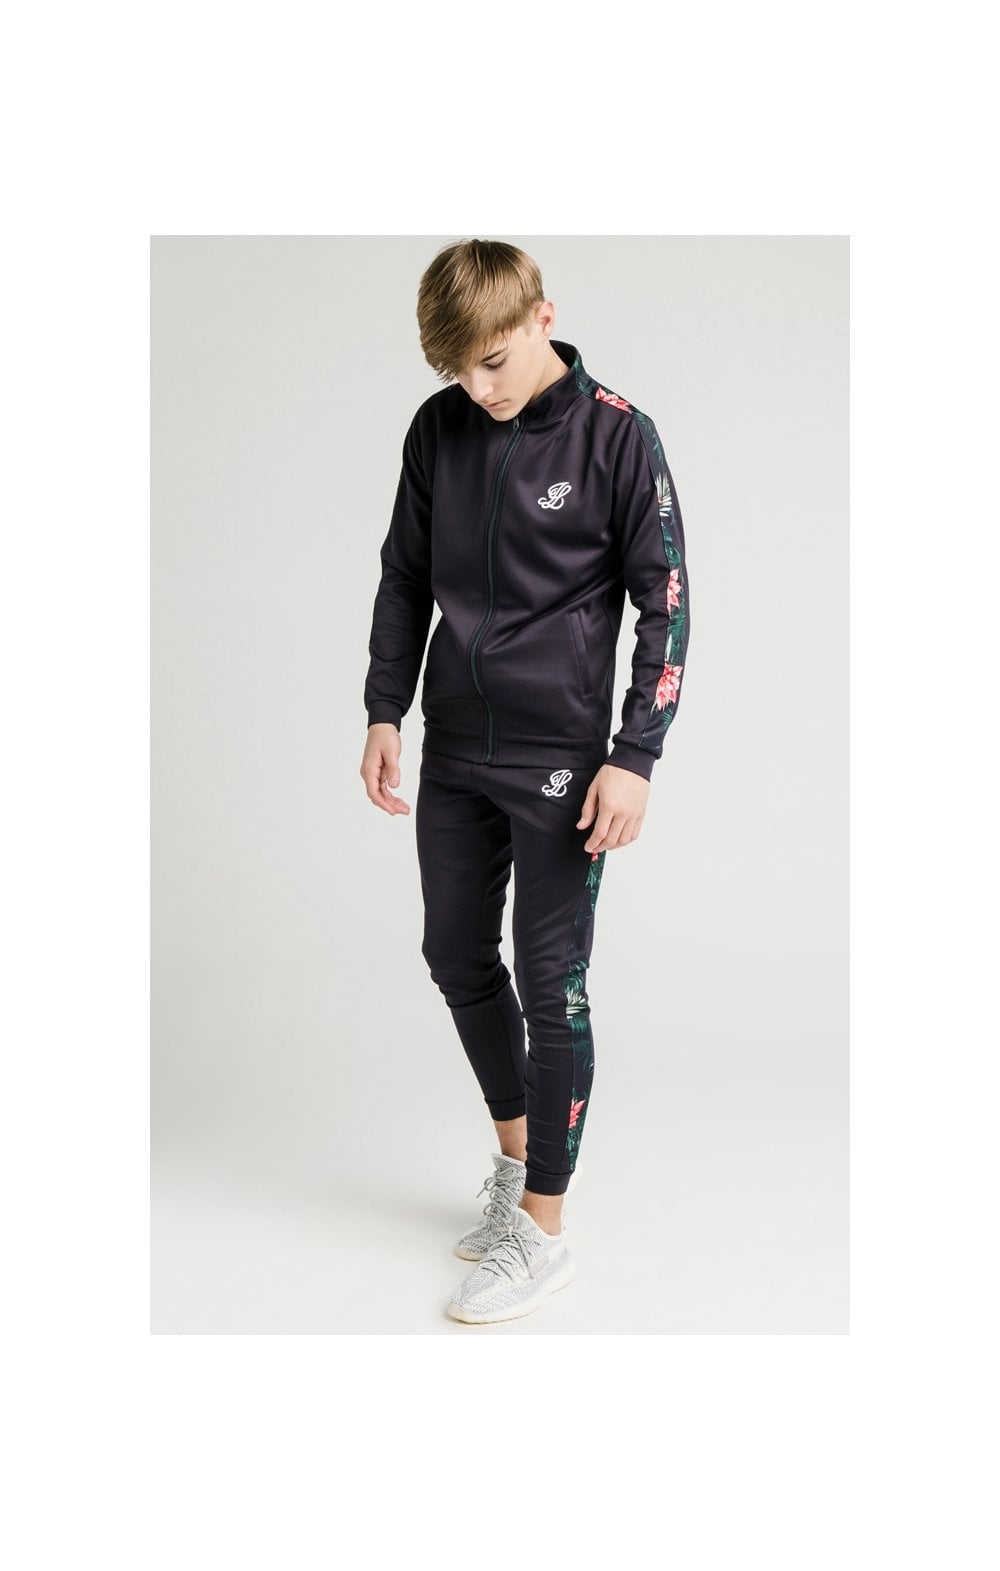 Illusive London Poly Funnel Neck Hoodie - Navy & Floral (3)